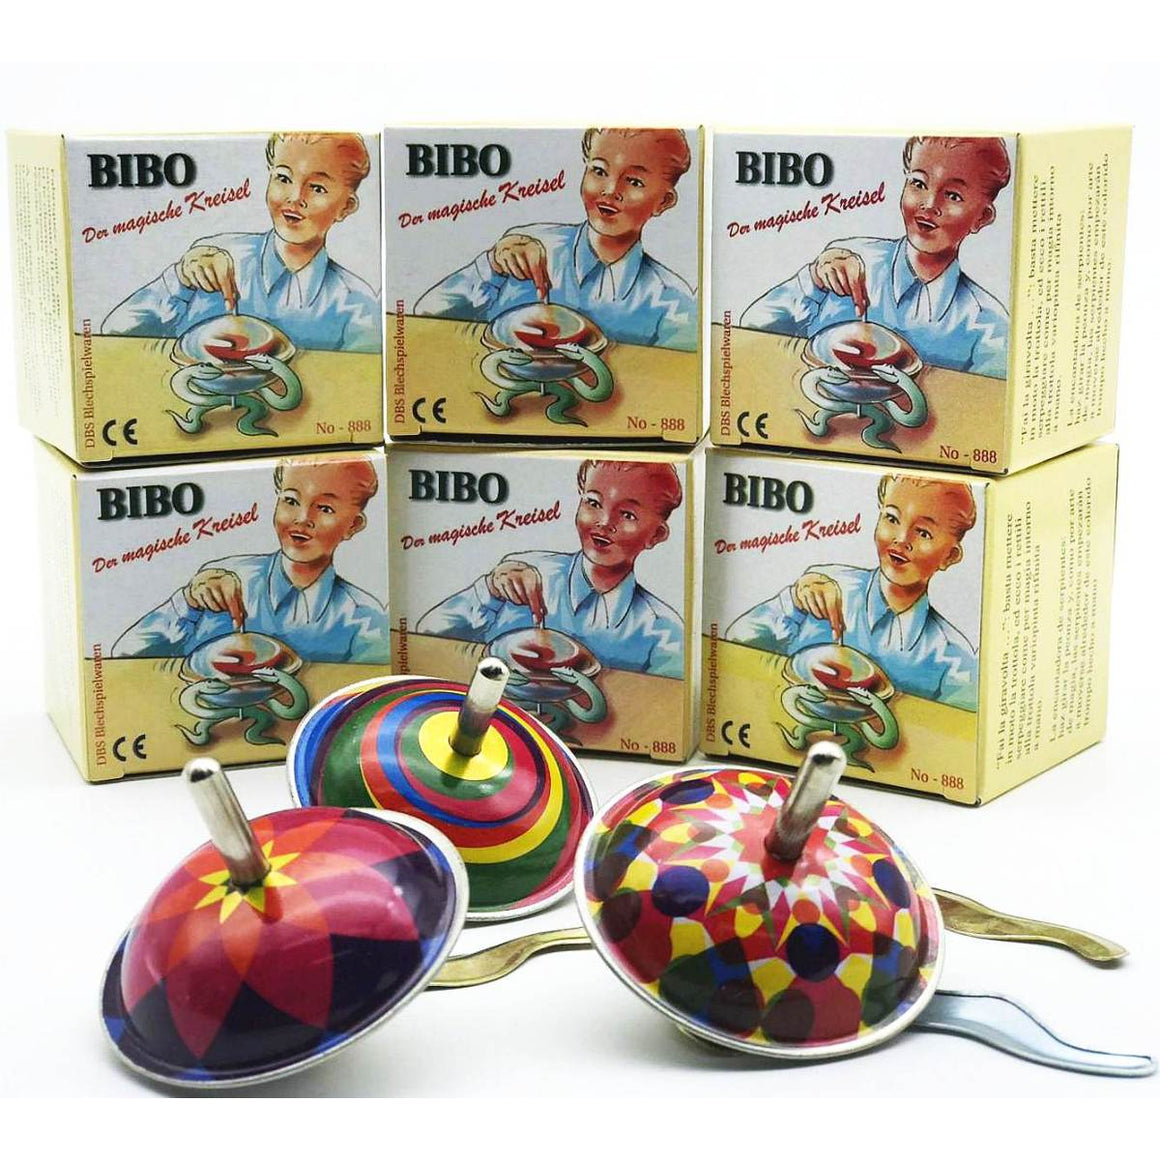 "Three brightly coloued tin spinning tops, pictured in front of a pile of boxes. The boxes feature the text "" Bibo Der Mahische Kreisel"" and an illustration of a child playing with a spinning top. There a metal snake shape pieces scattered around the spinning tops."